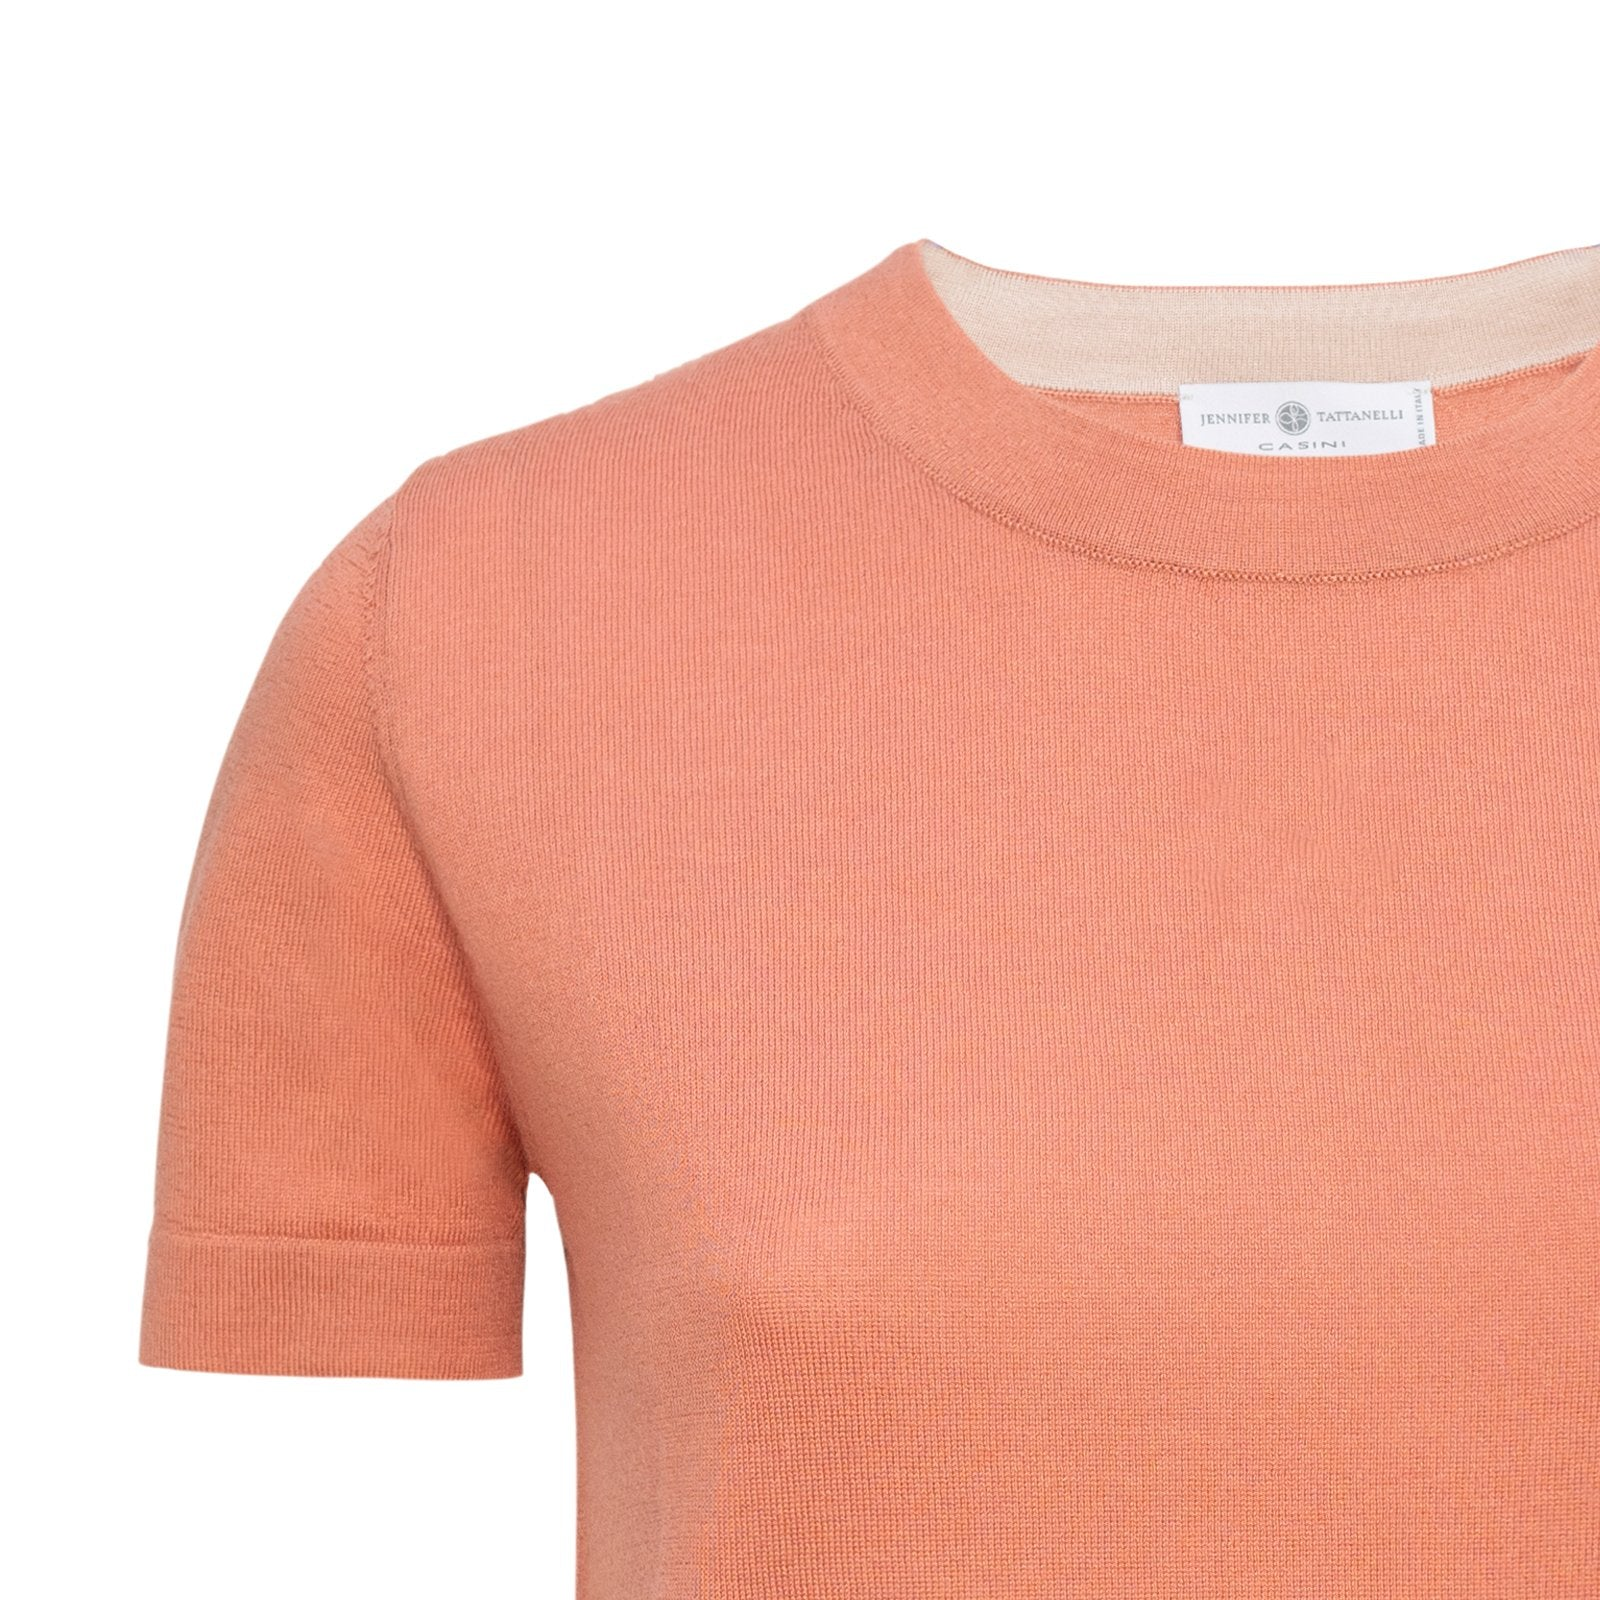 Women Cashmere Knitwear T-Shirt in Terracotta - Jennifer Tattanelli